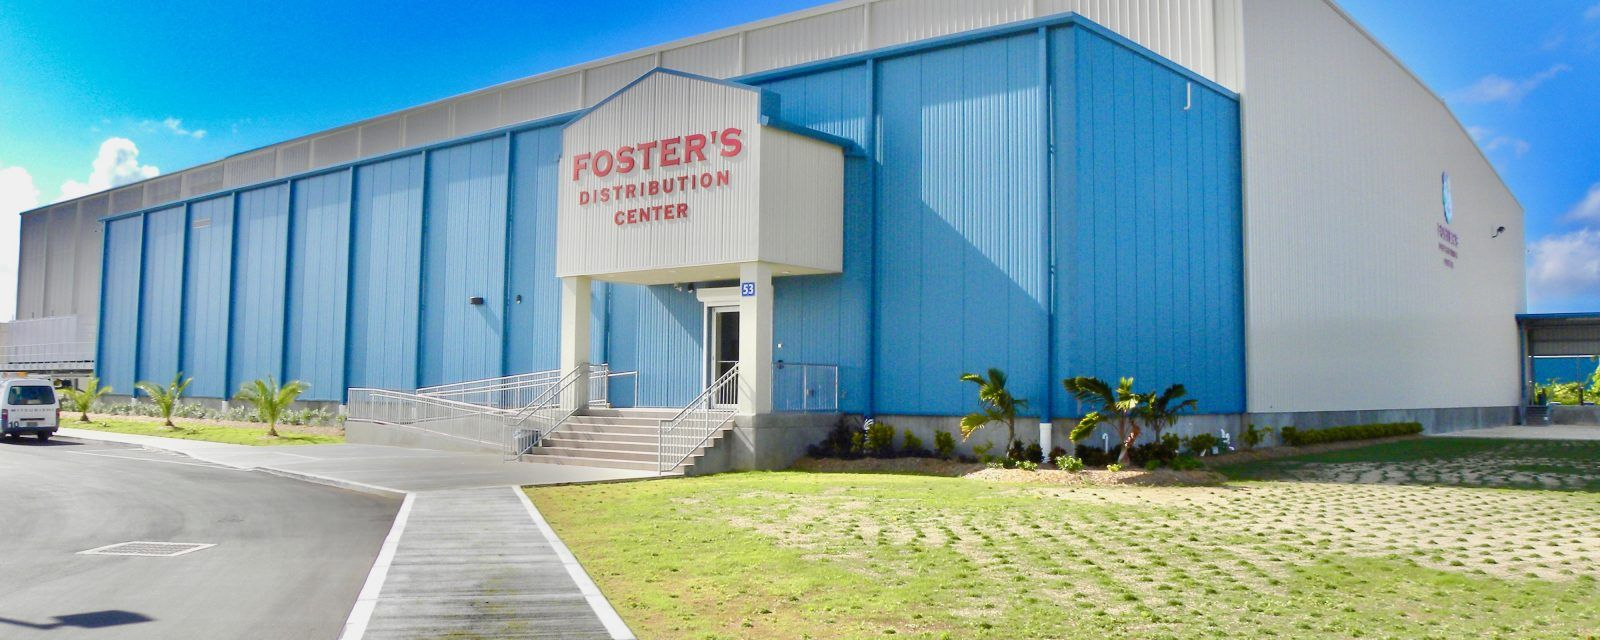 Foster's Distribution Center